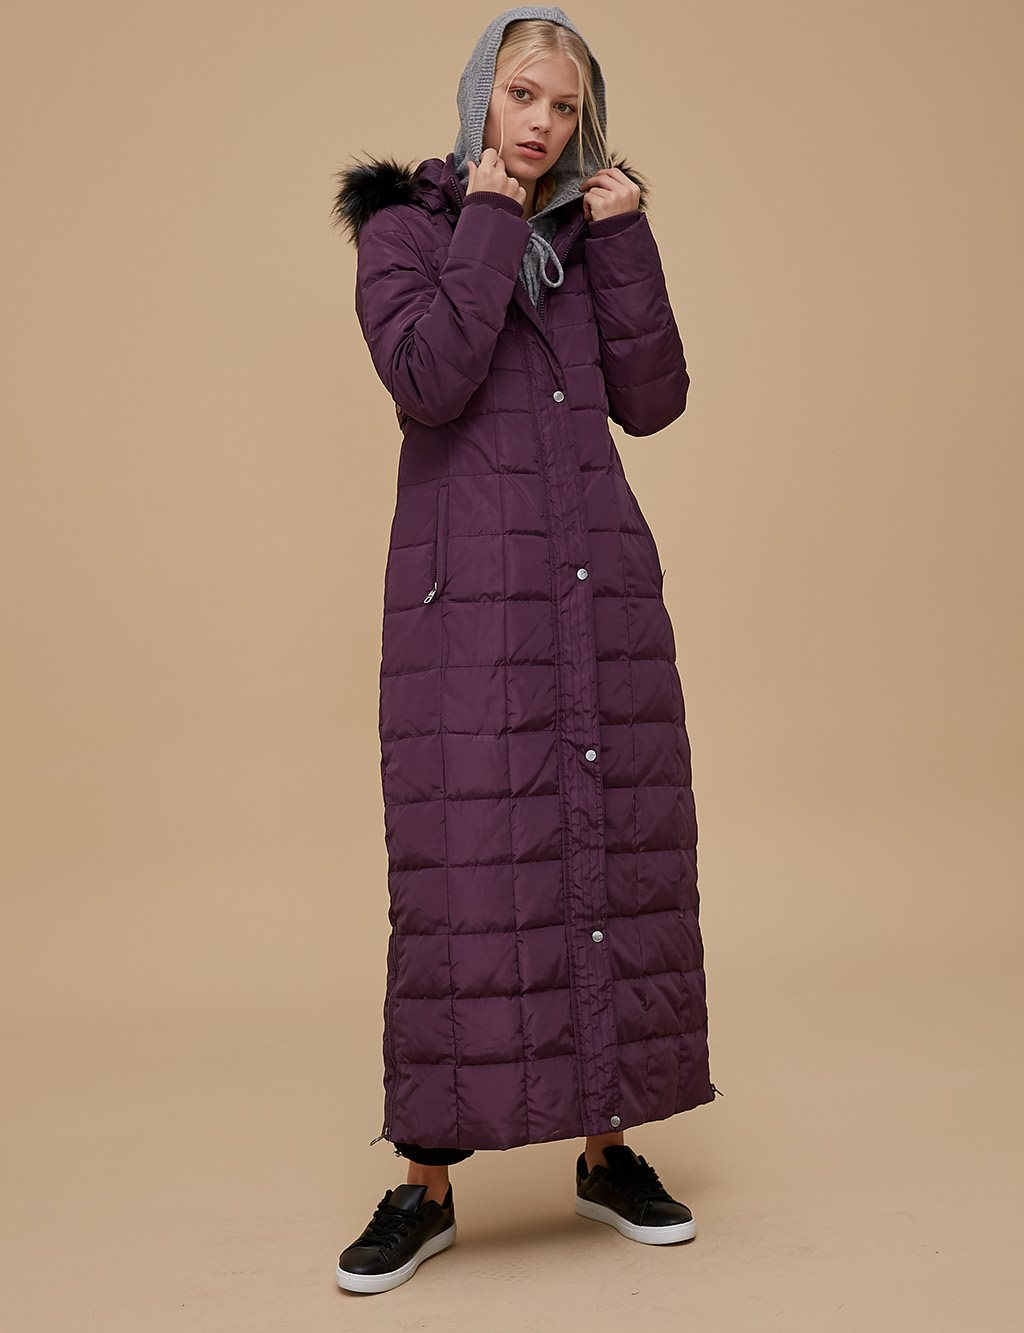 Goose-Quill Coat With Hood Plum A8 27001